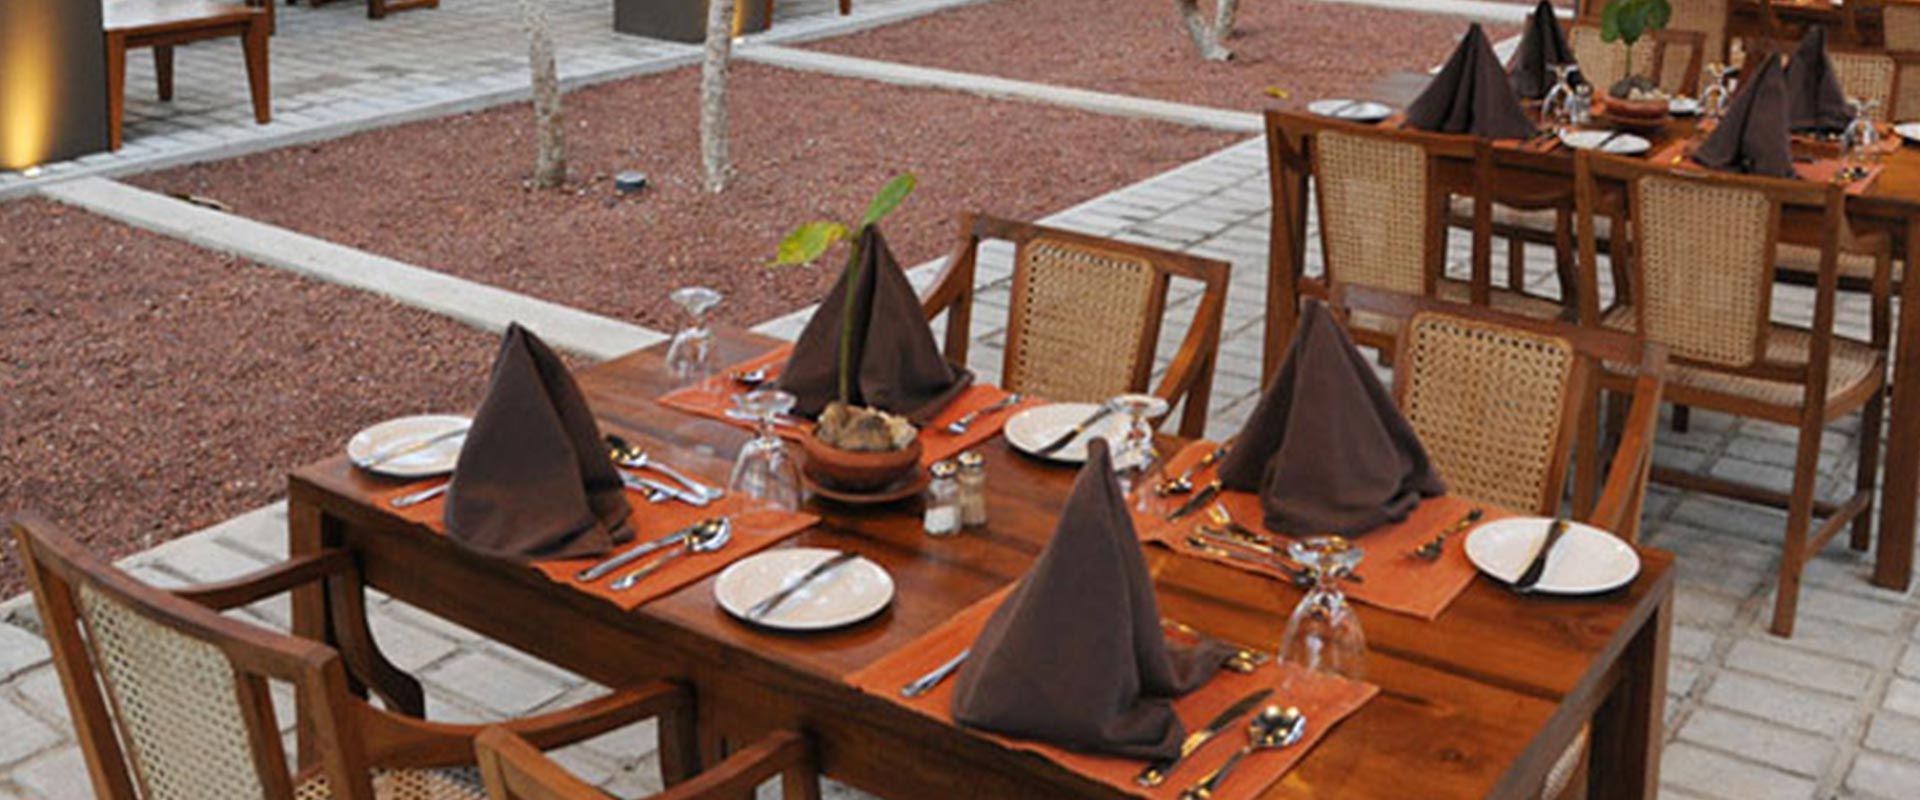 Dining tables at Heritance Ayurveda